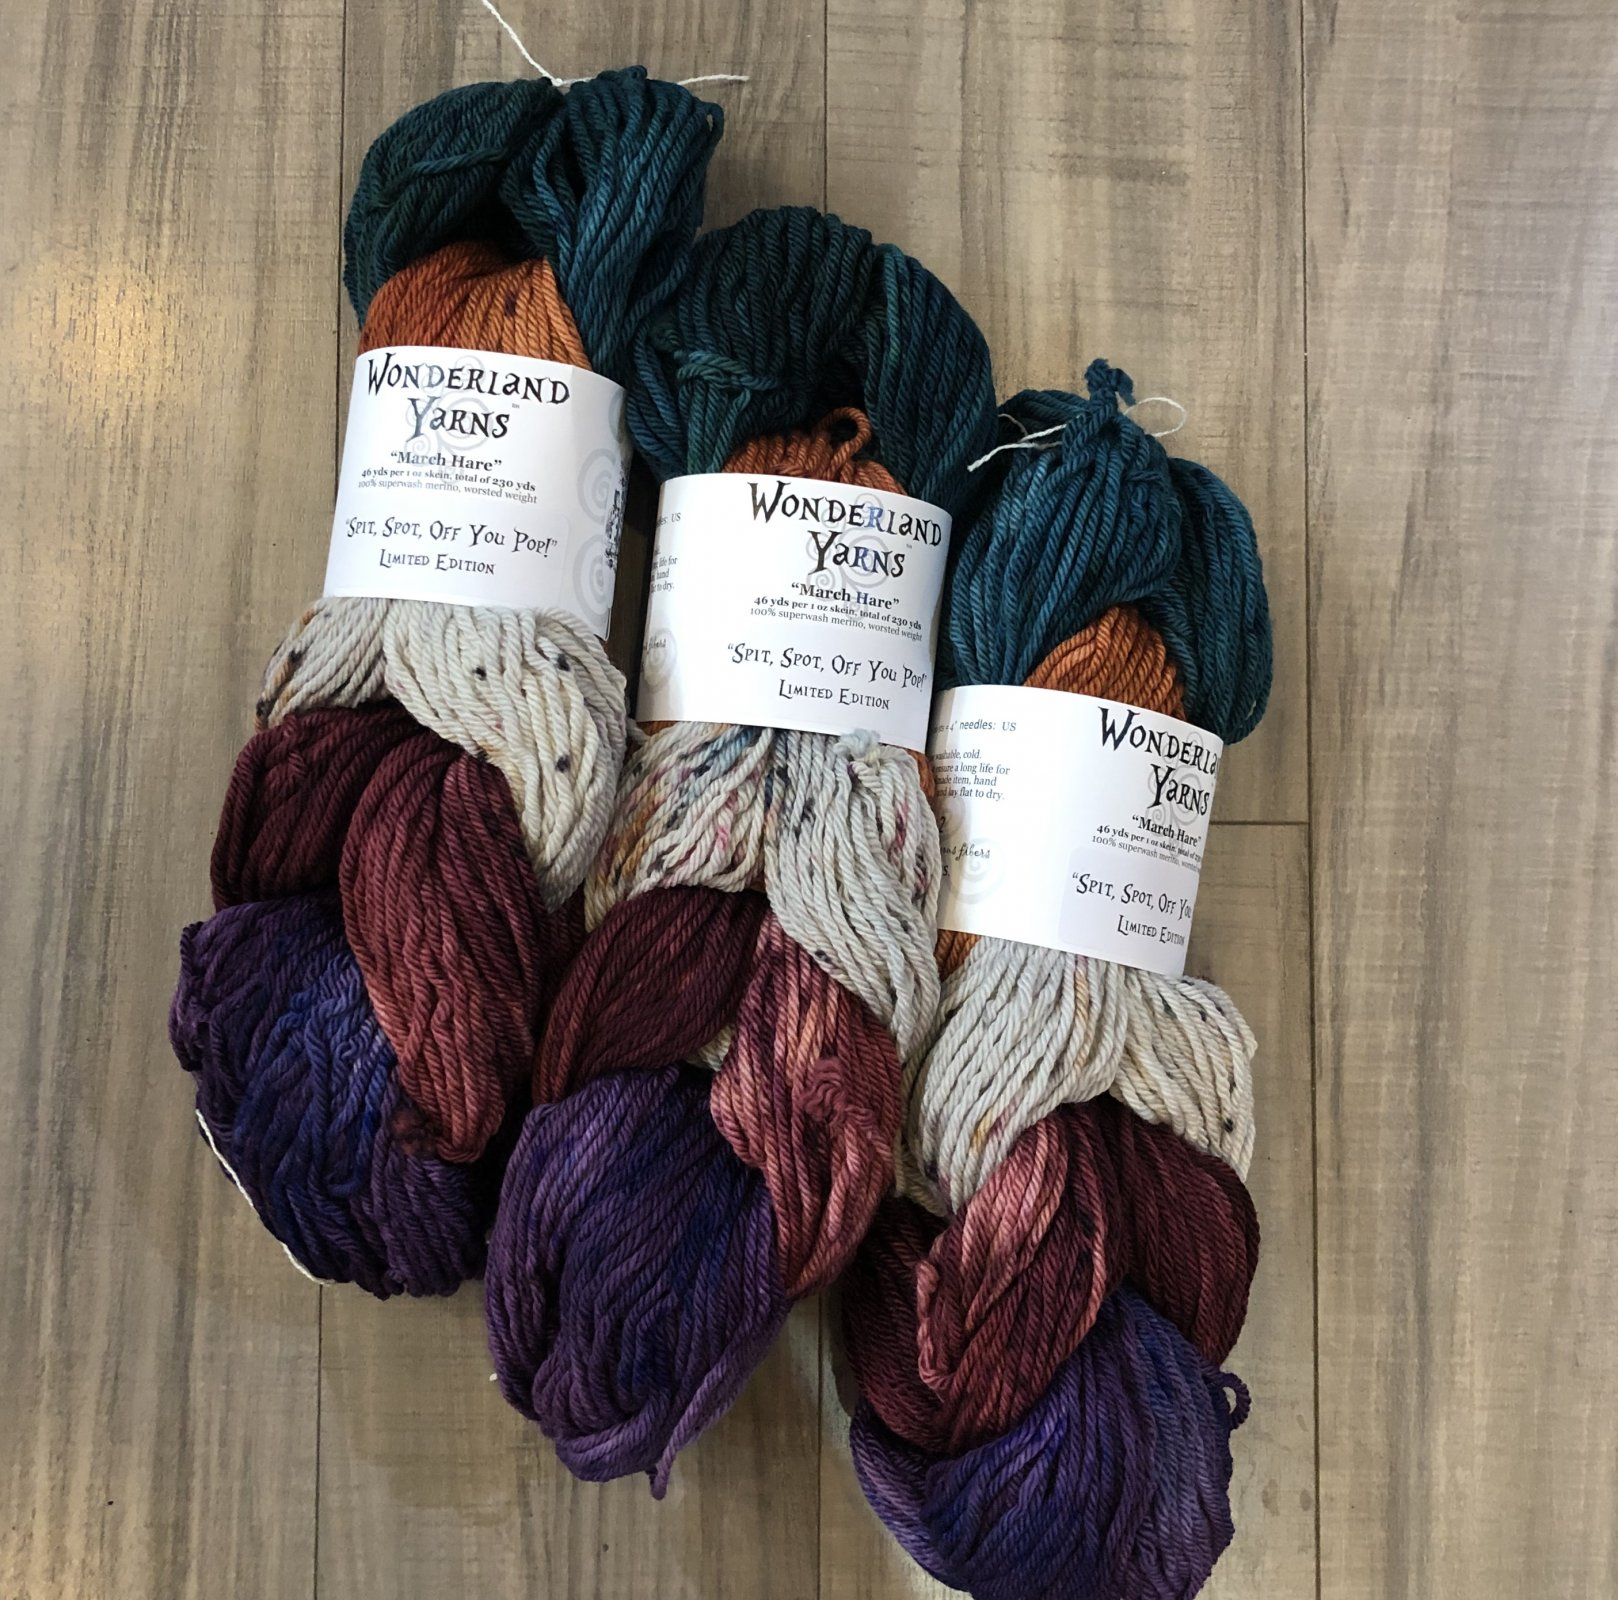 wonderland yarns march hare pack of the month